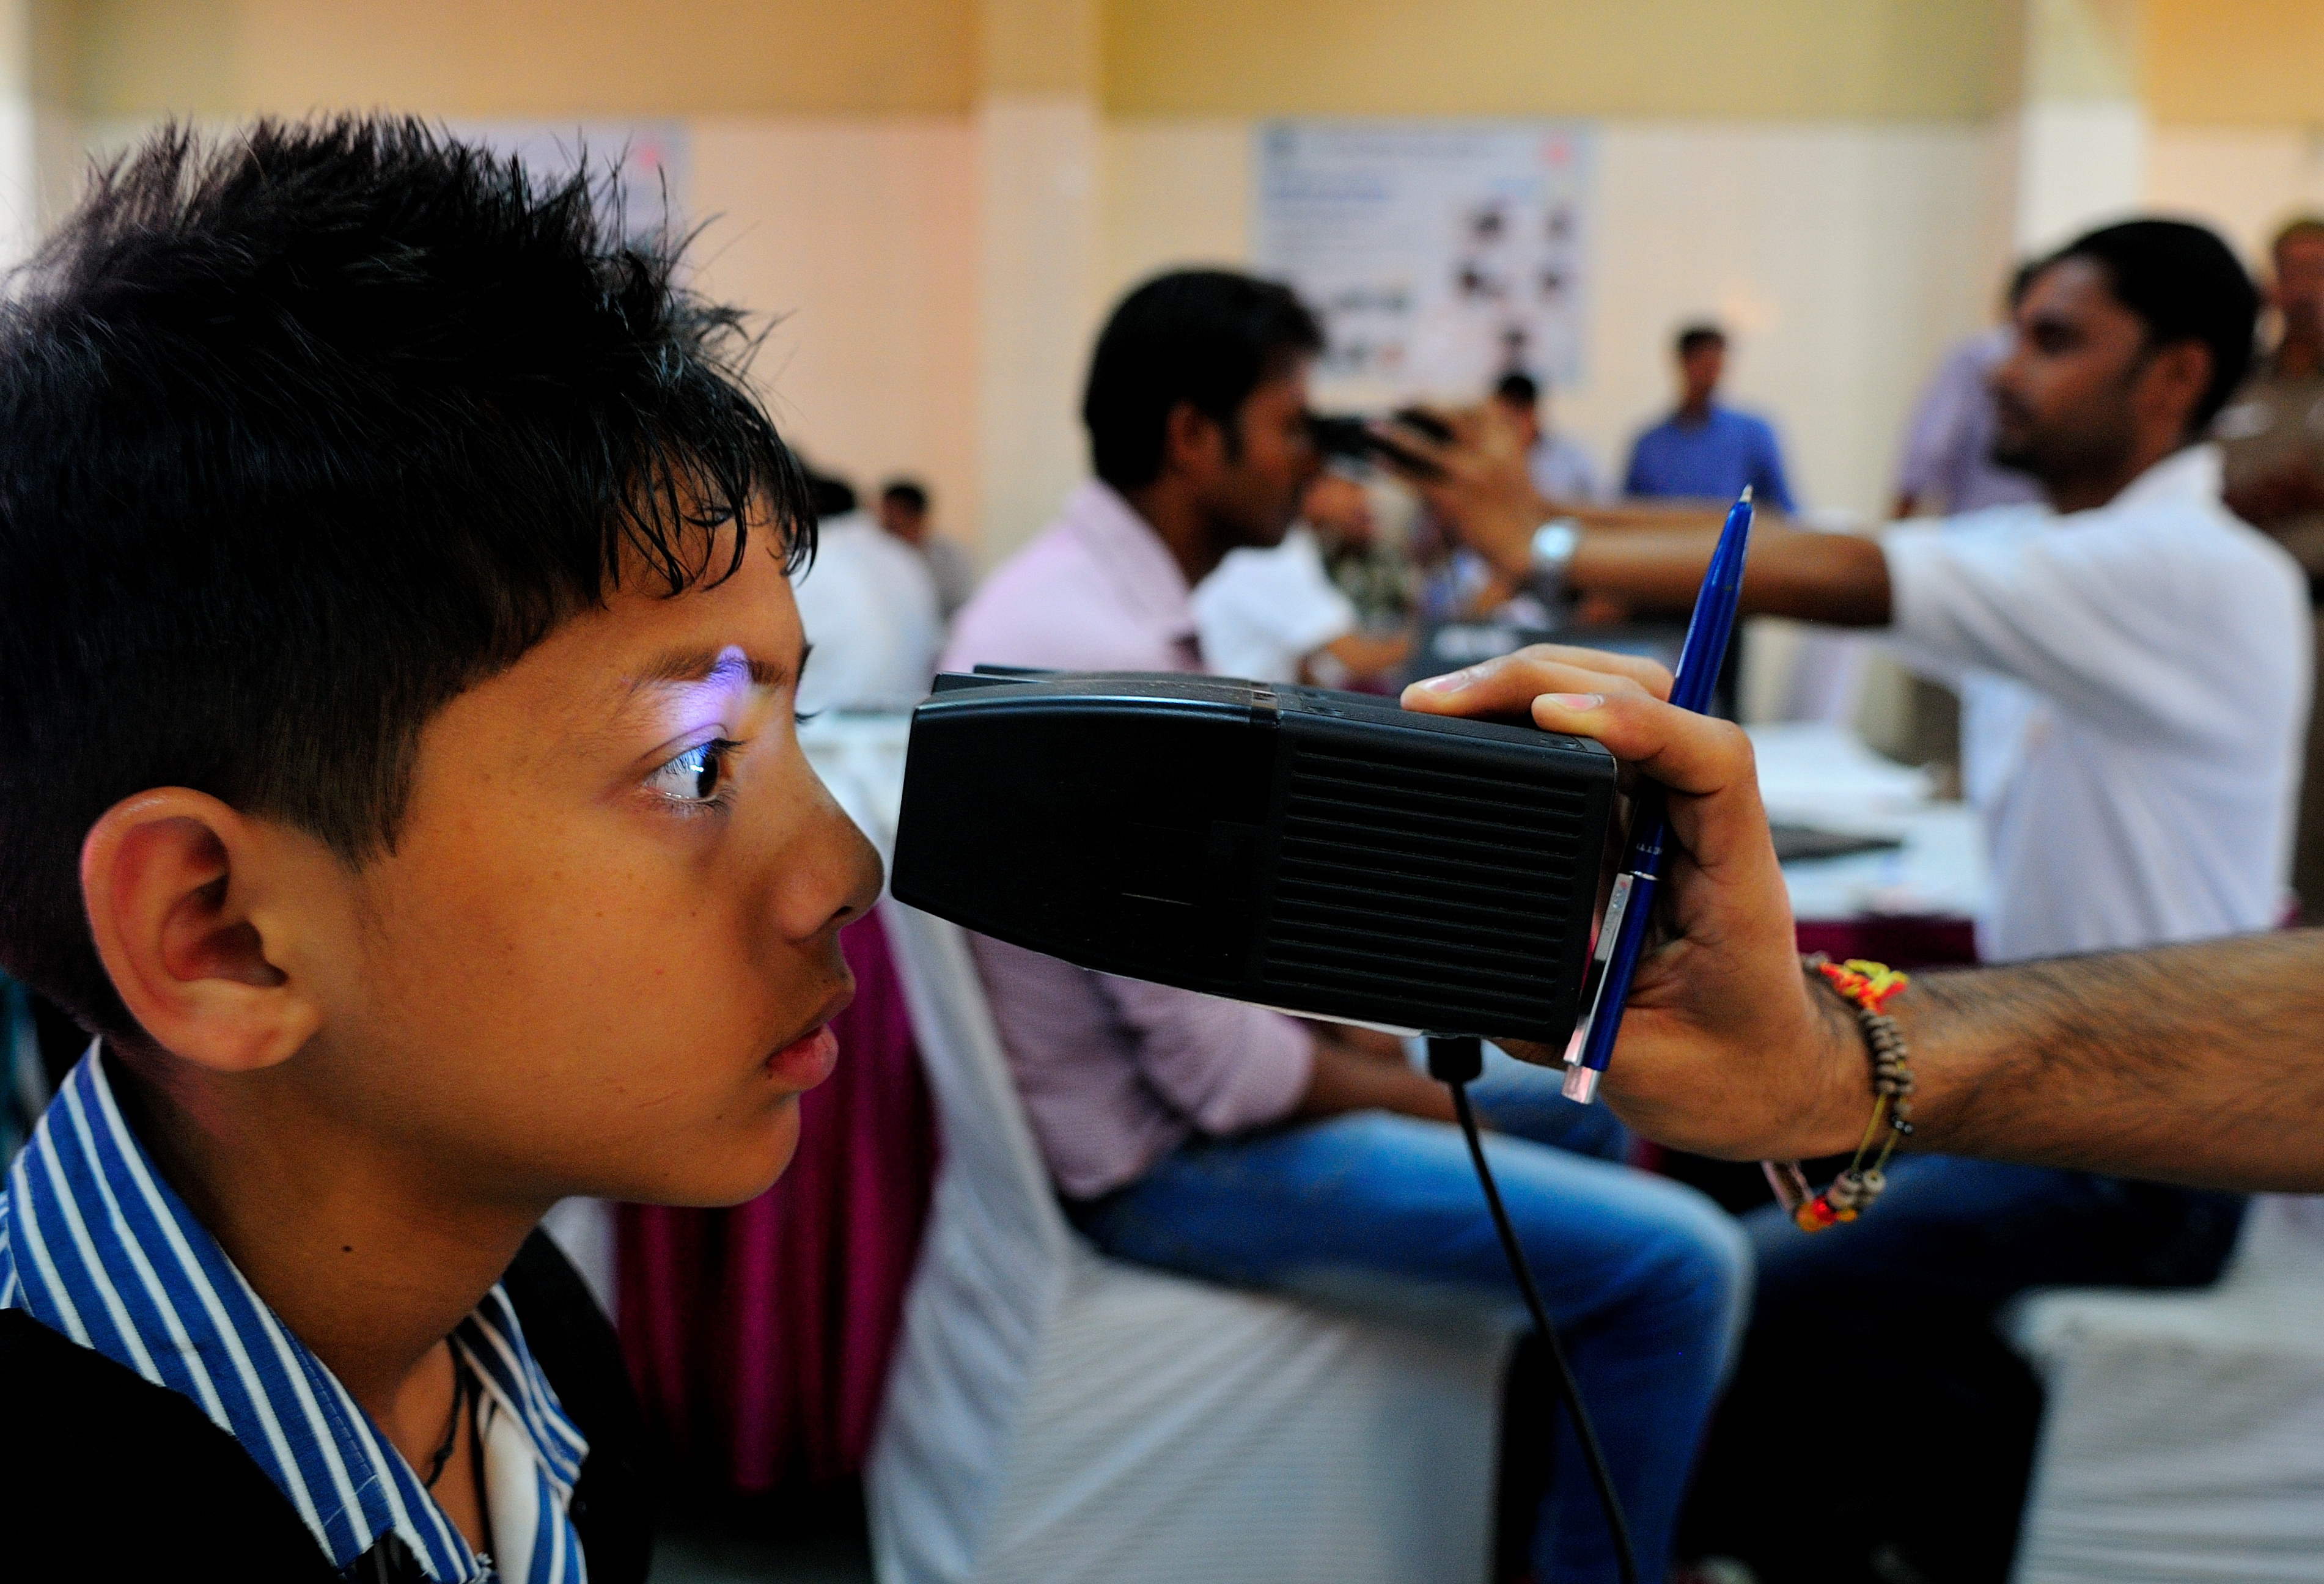 APRIL 12, 2013: A young boy has his iris scanned for an Aadhaar card, New Delhi